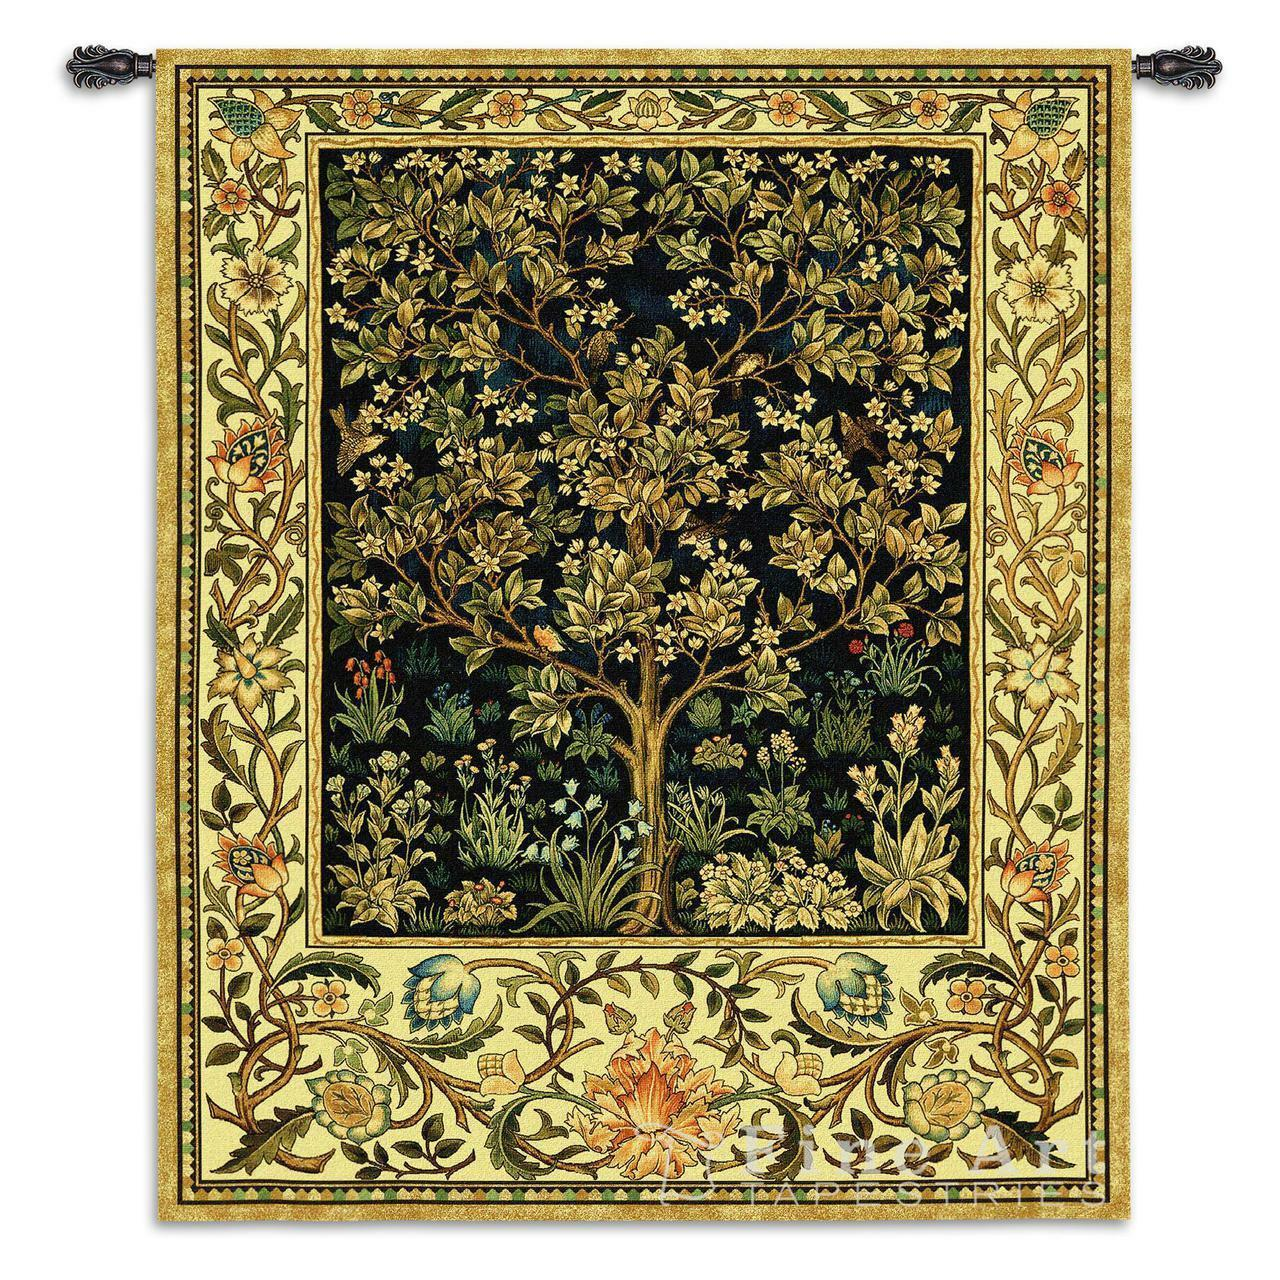 Tree Of Life Midnight Blau Mille Fleur Wall Tapestry William Morris Design 77x53